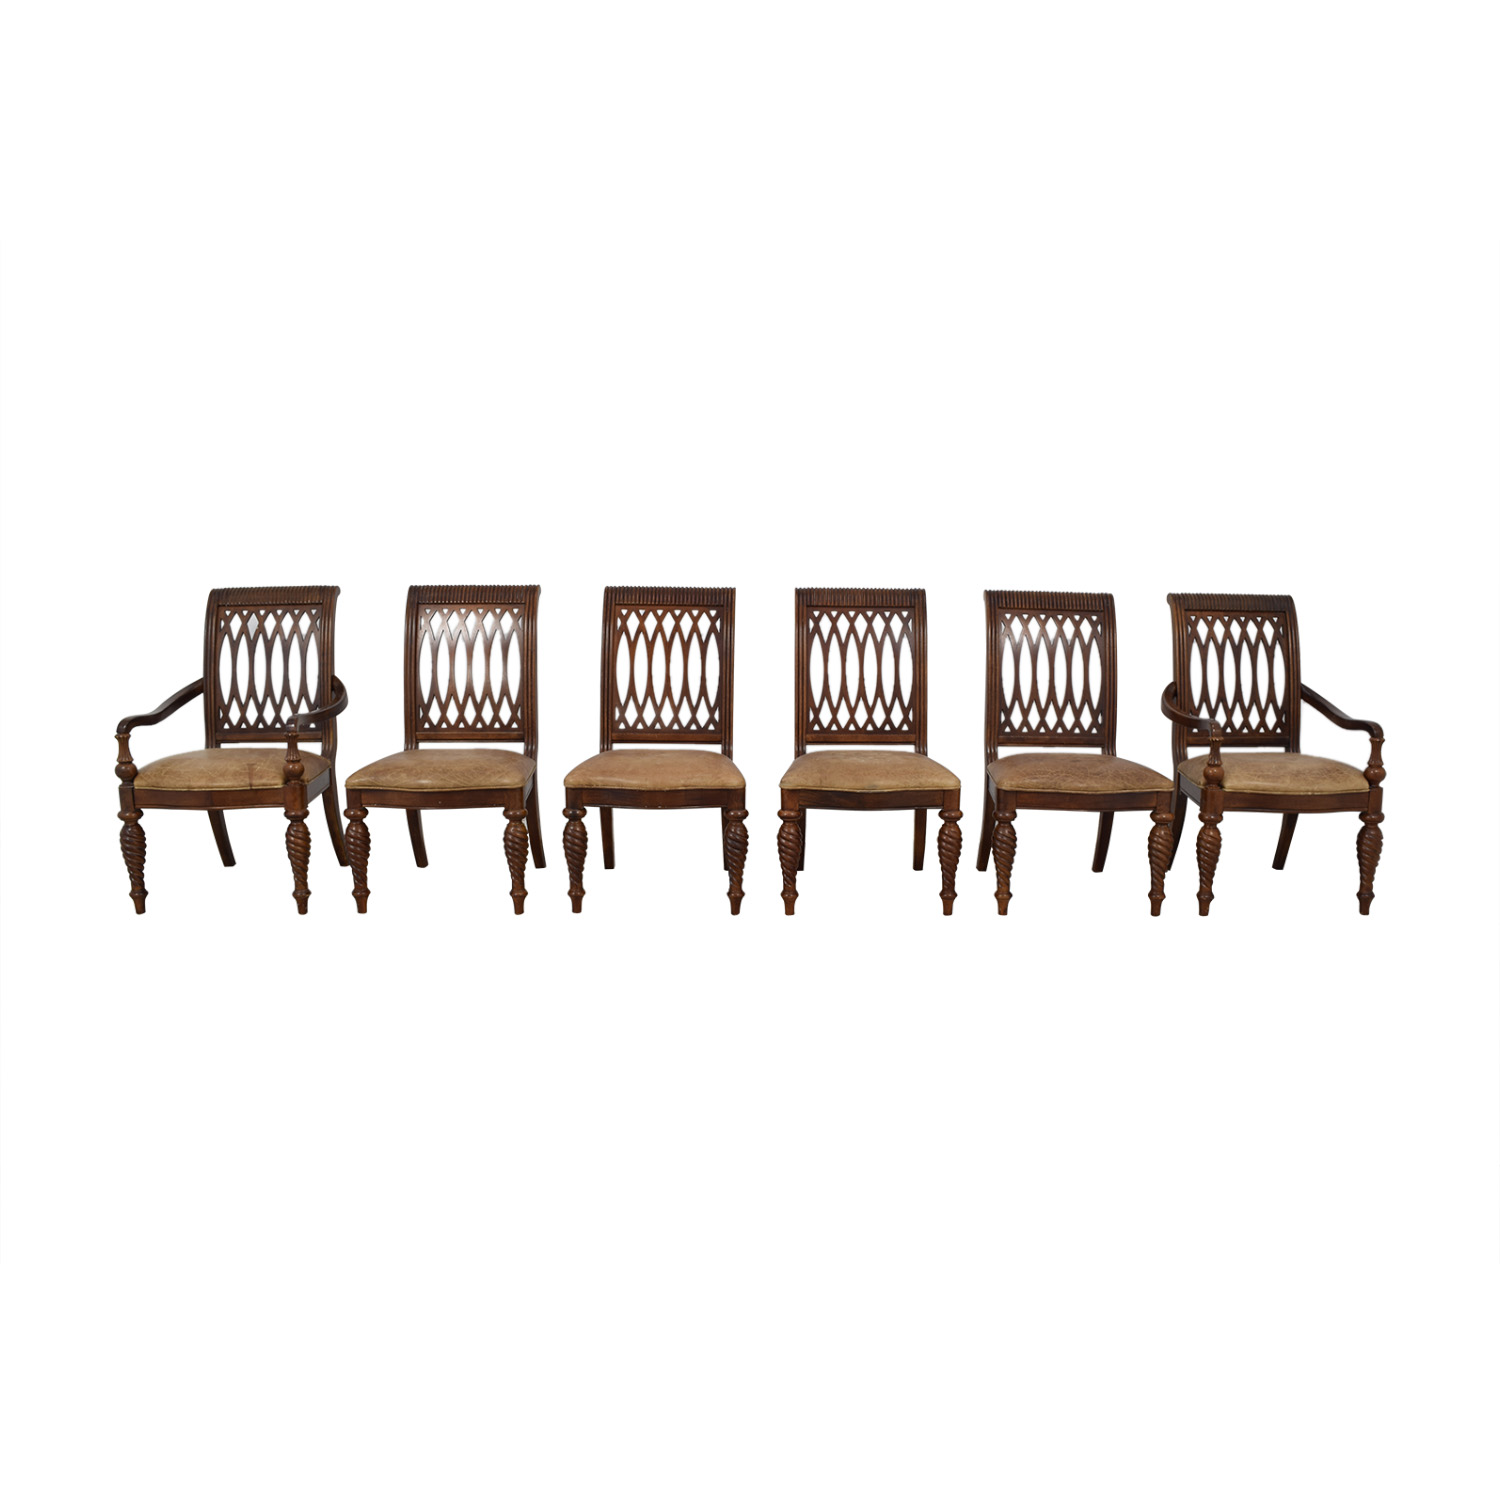 Bernhardt Embassy Row Cherry Carved Wood Dining Chairs / Chairs